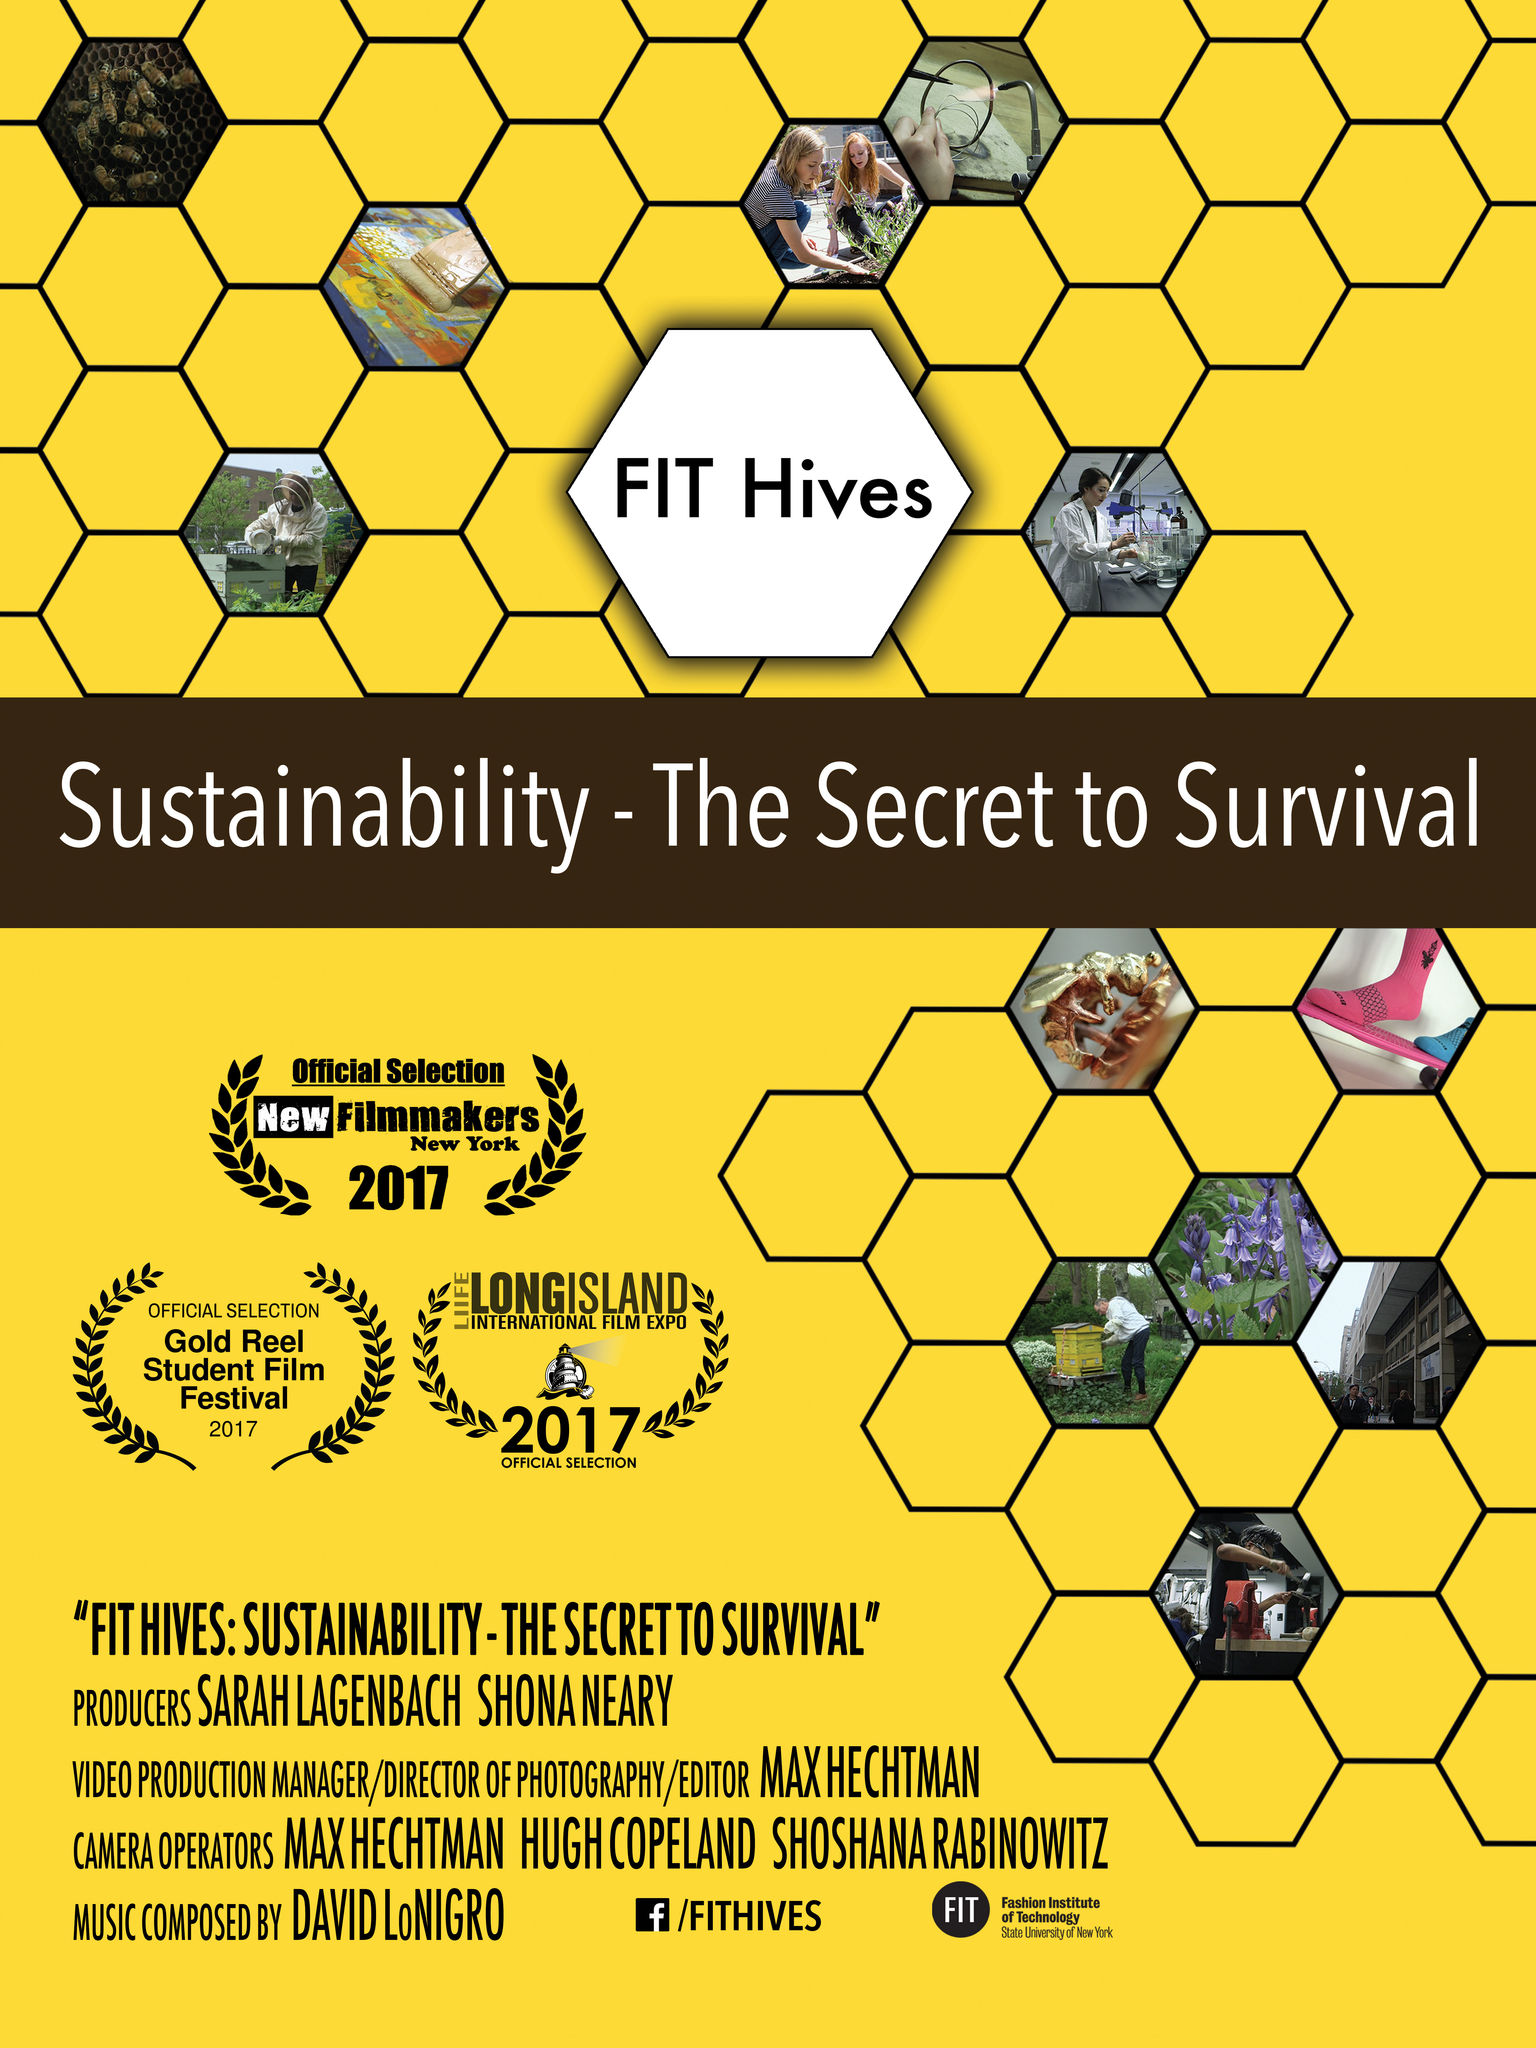 FIT Hives: Sustainability - The Secret to Survival